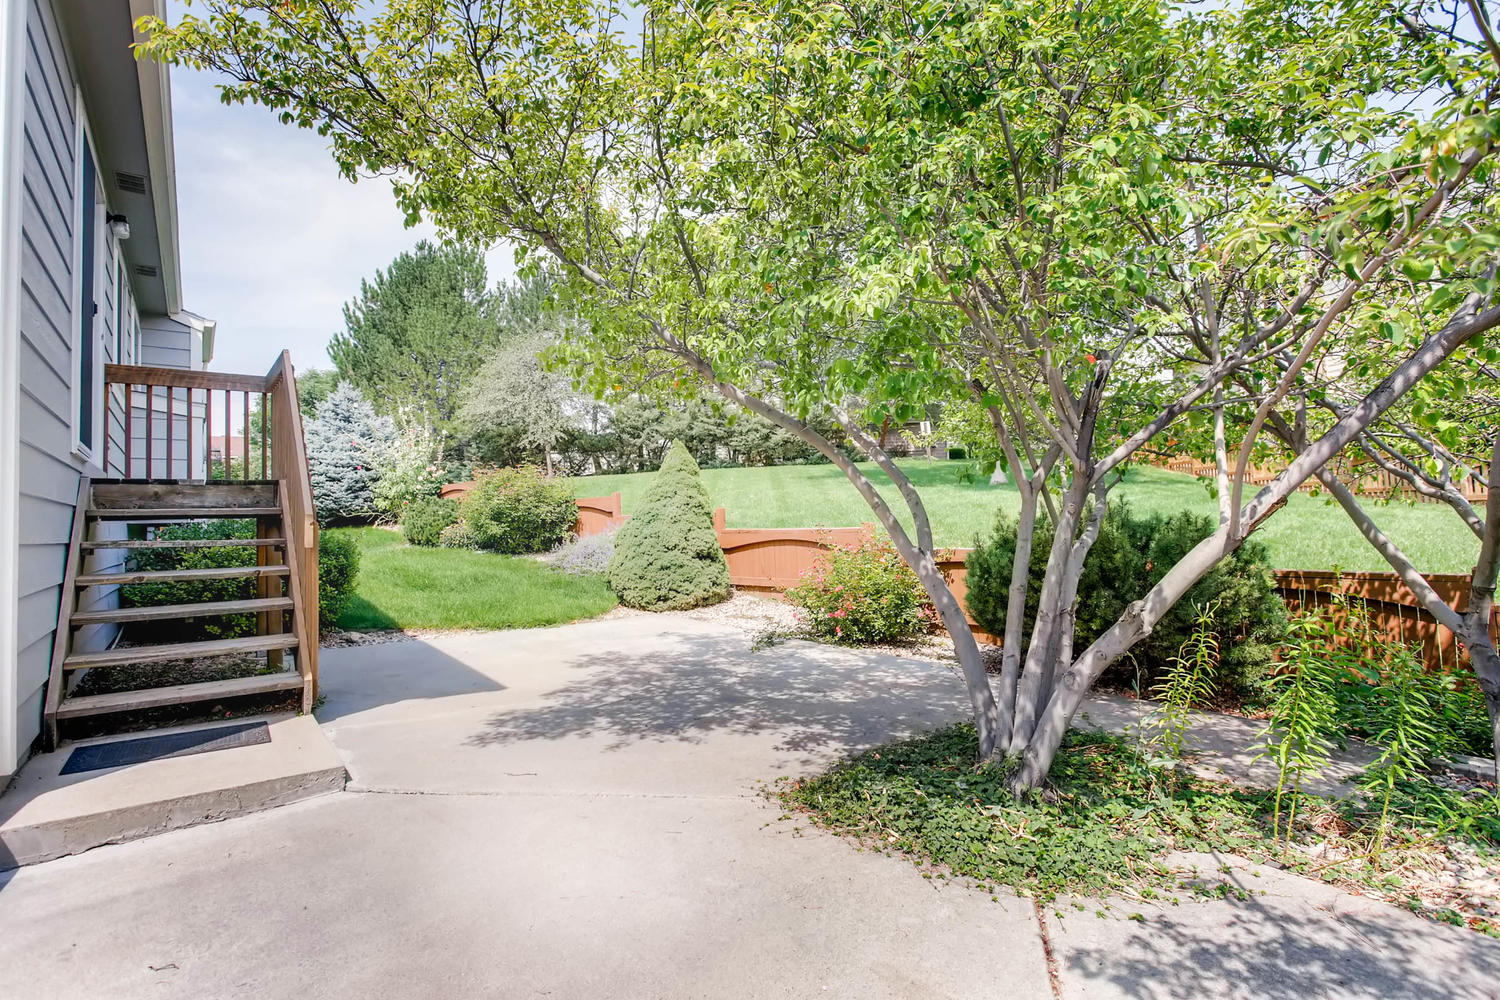 Photo of 520 Sedgwick Dr, Fort Collins, CO, 80525